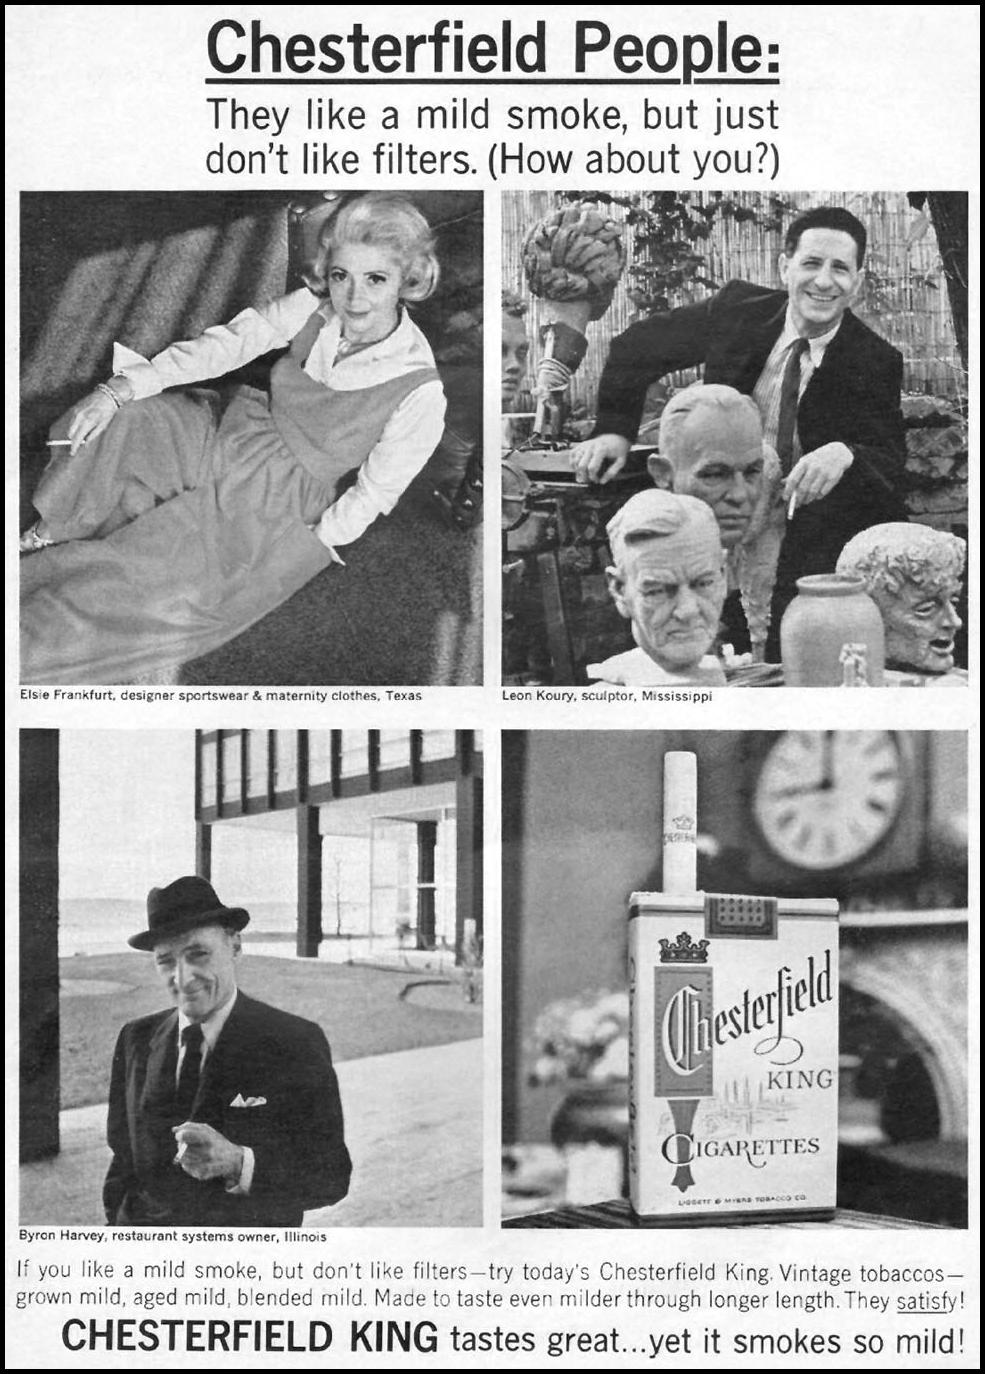 CHESTERFIELD CIGARETTES NEWSWEEK 10/12/1964 p. 1